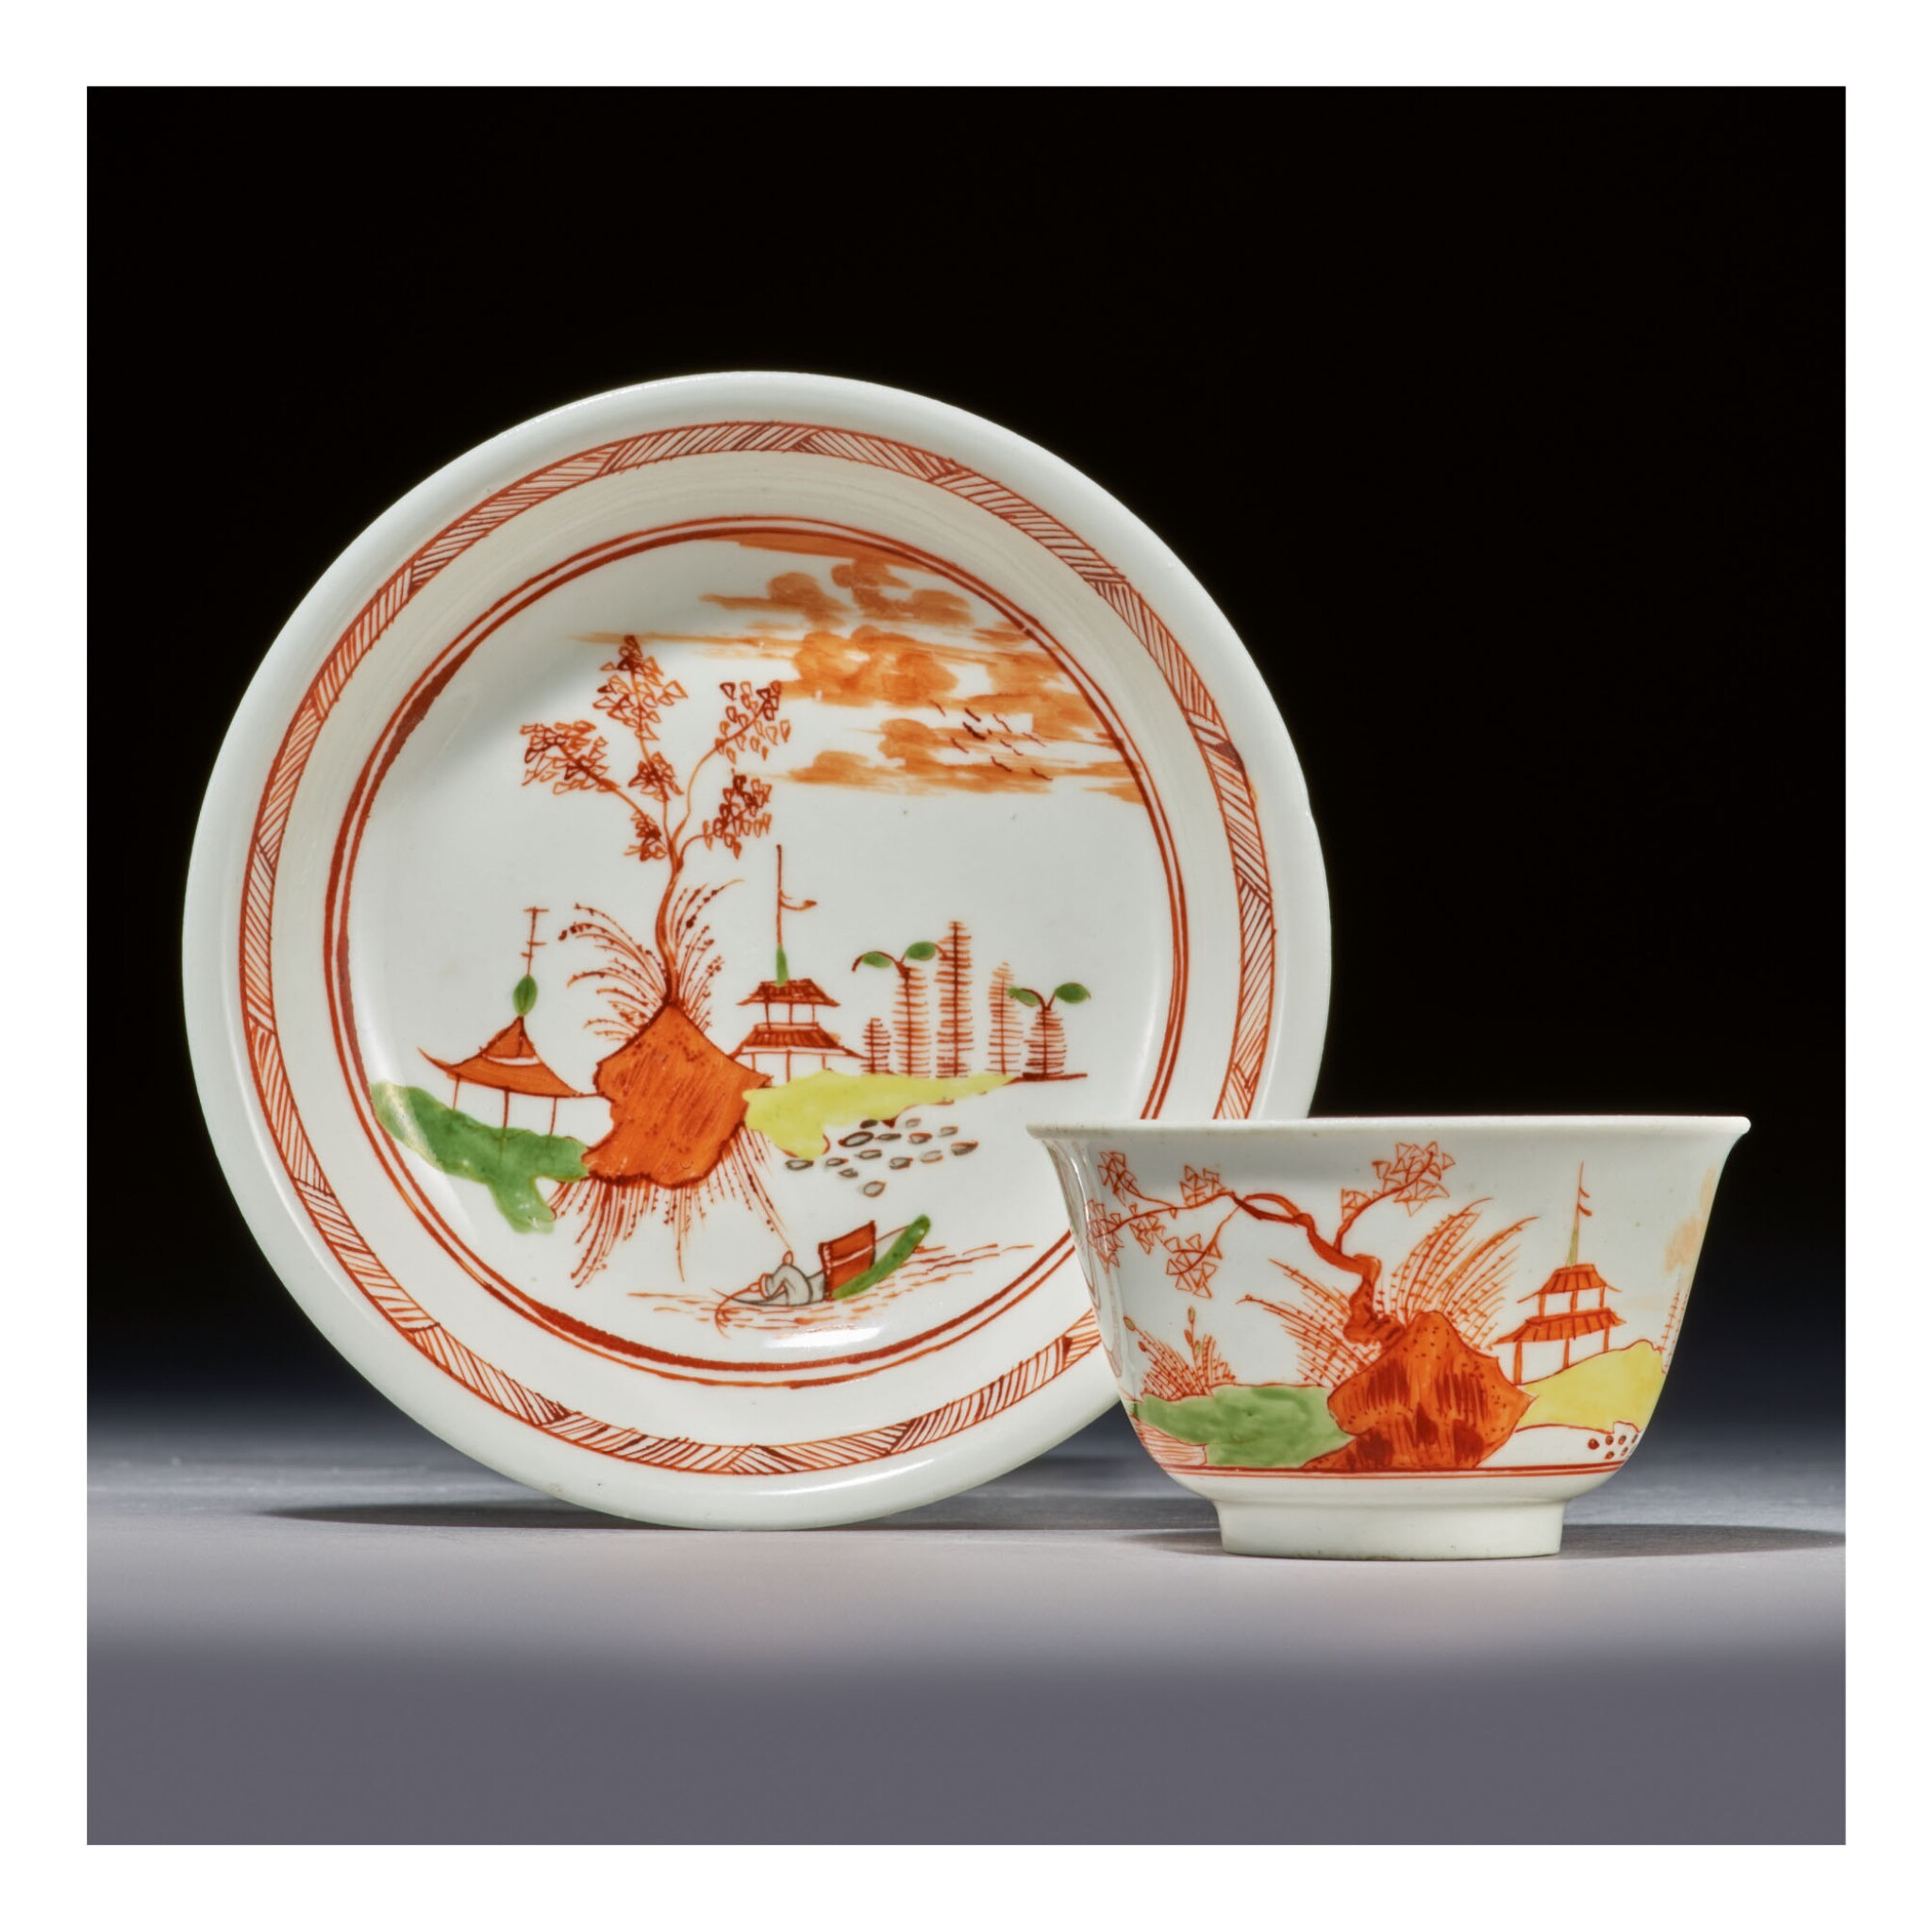 A RARE EARLY MEISSEN TEABOWL AND SAUCER CIRCA 1725